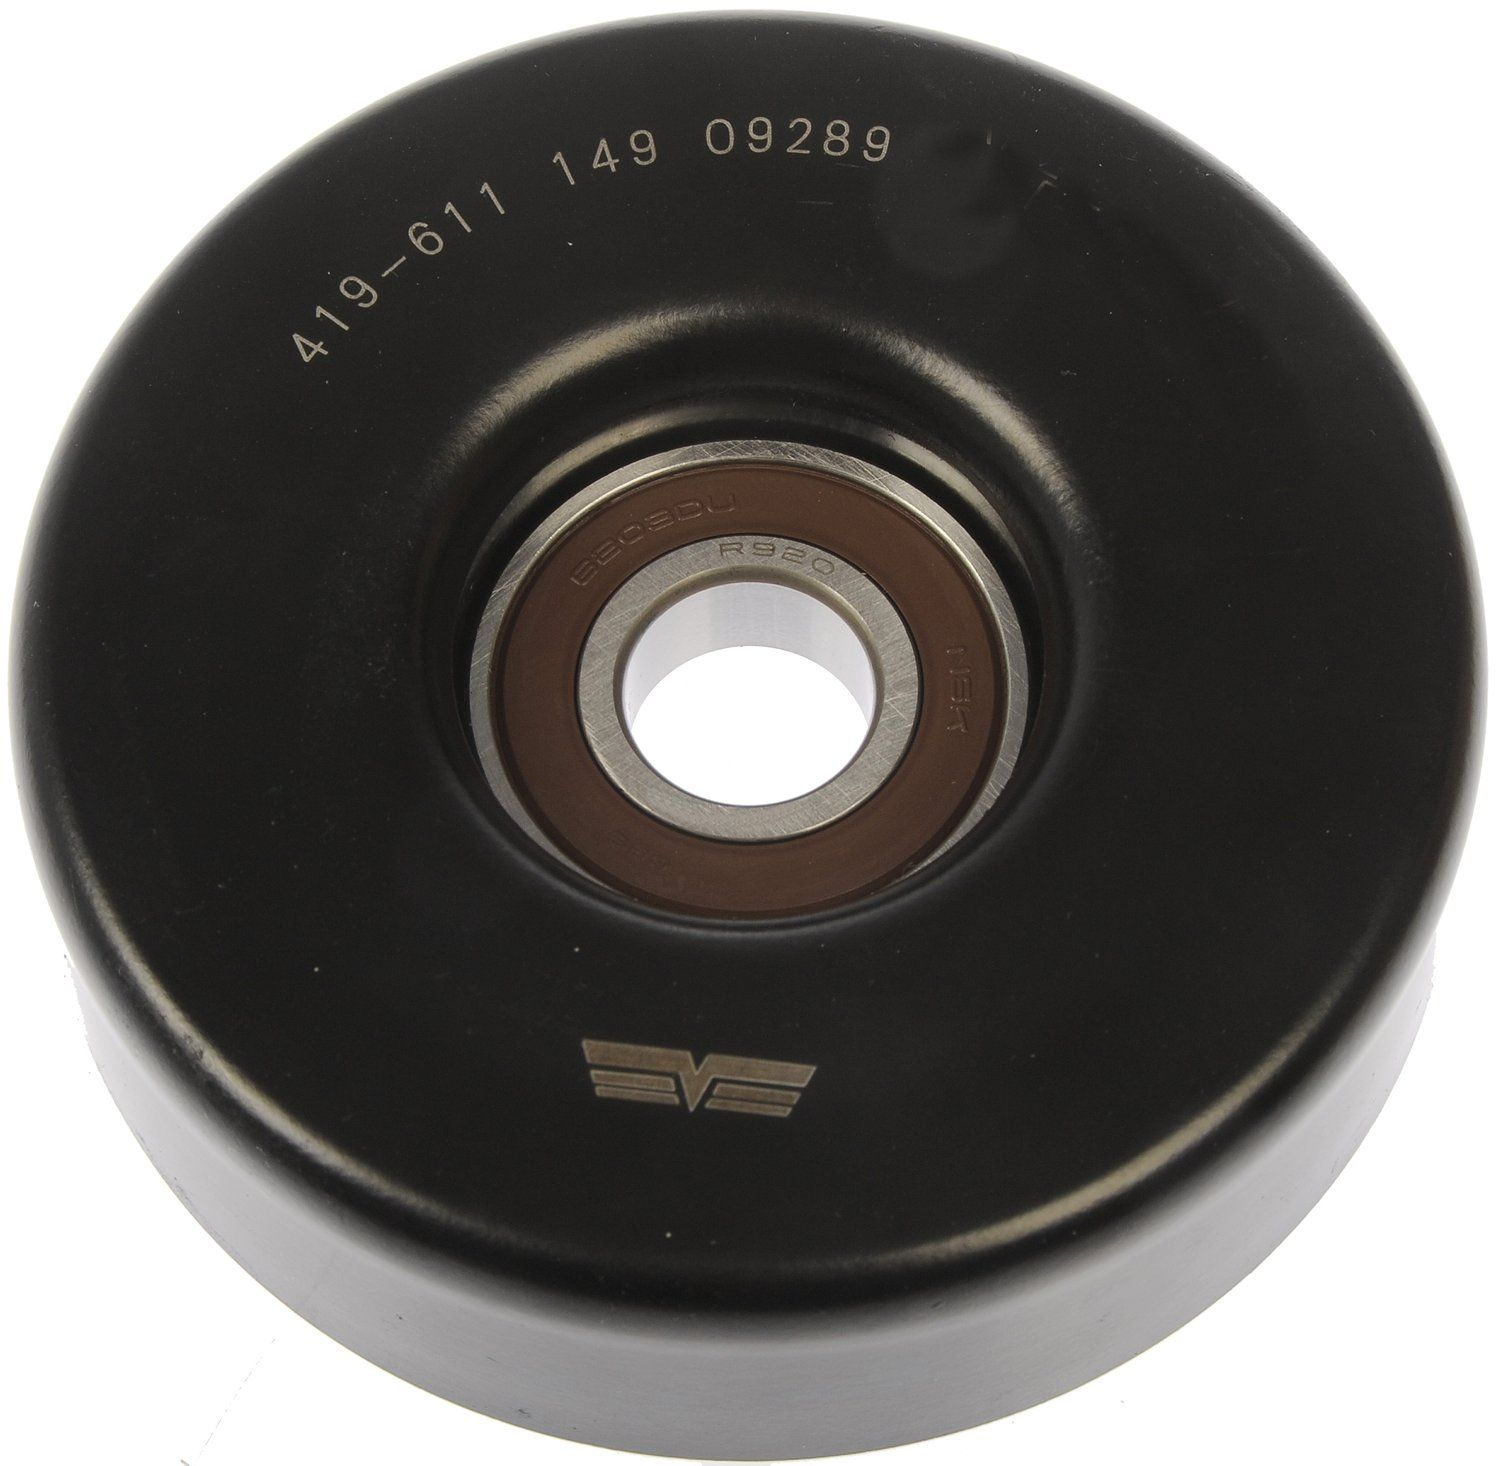 Dodge Dynasty 1990 Idler Tensioner Pulley: Drive Belt Tensioner Pulley Replacement (ACDelco, APA/URO